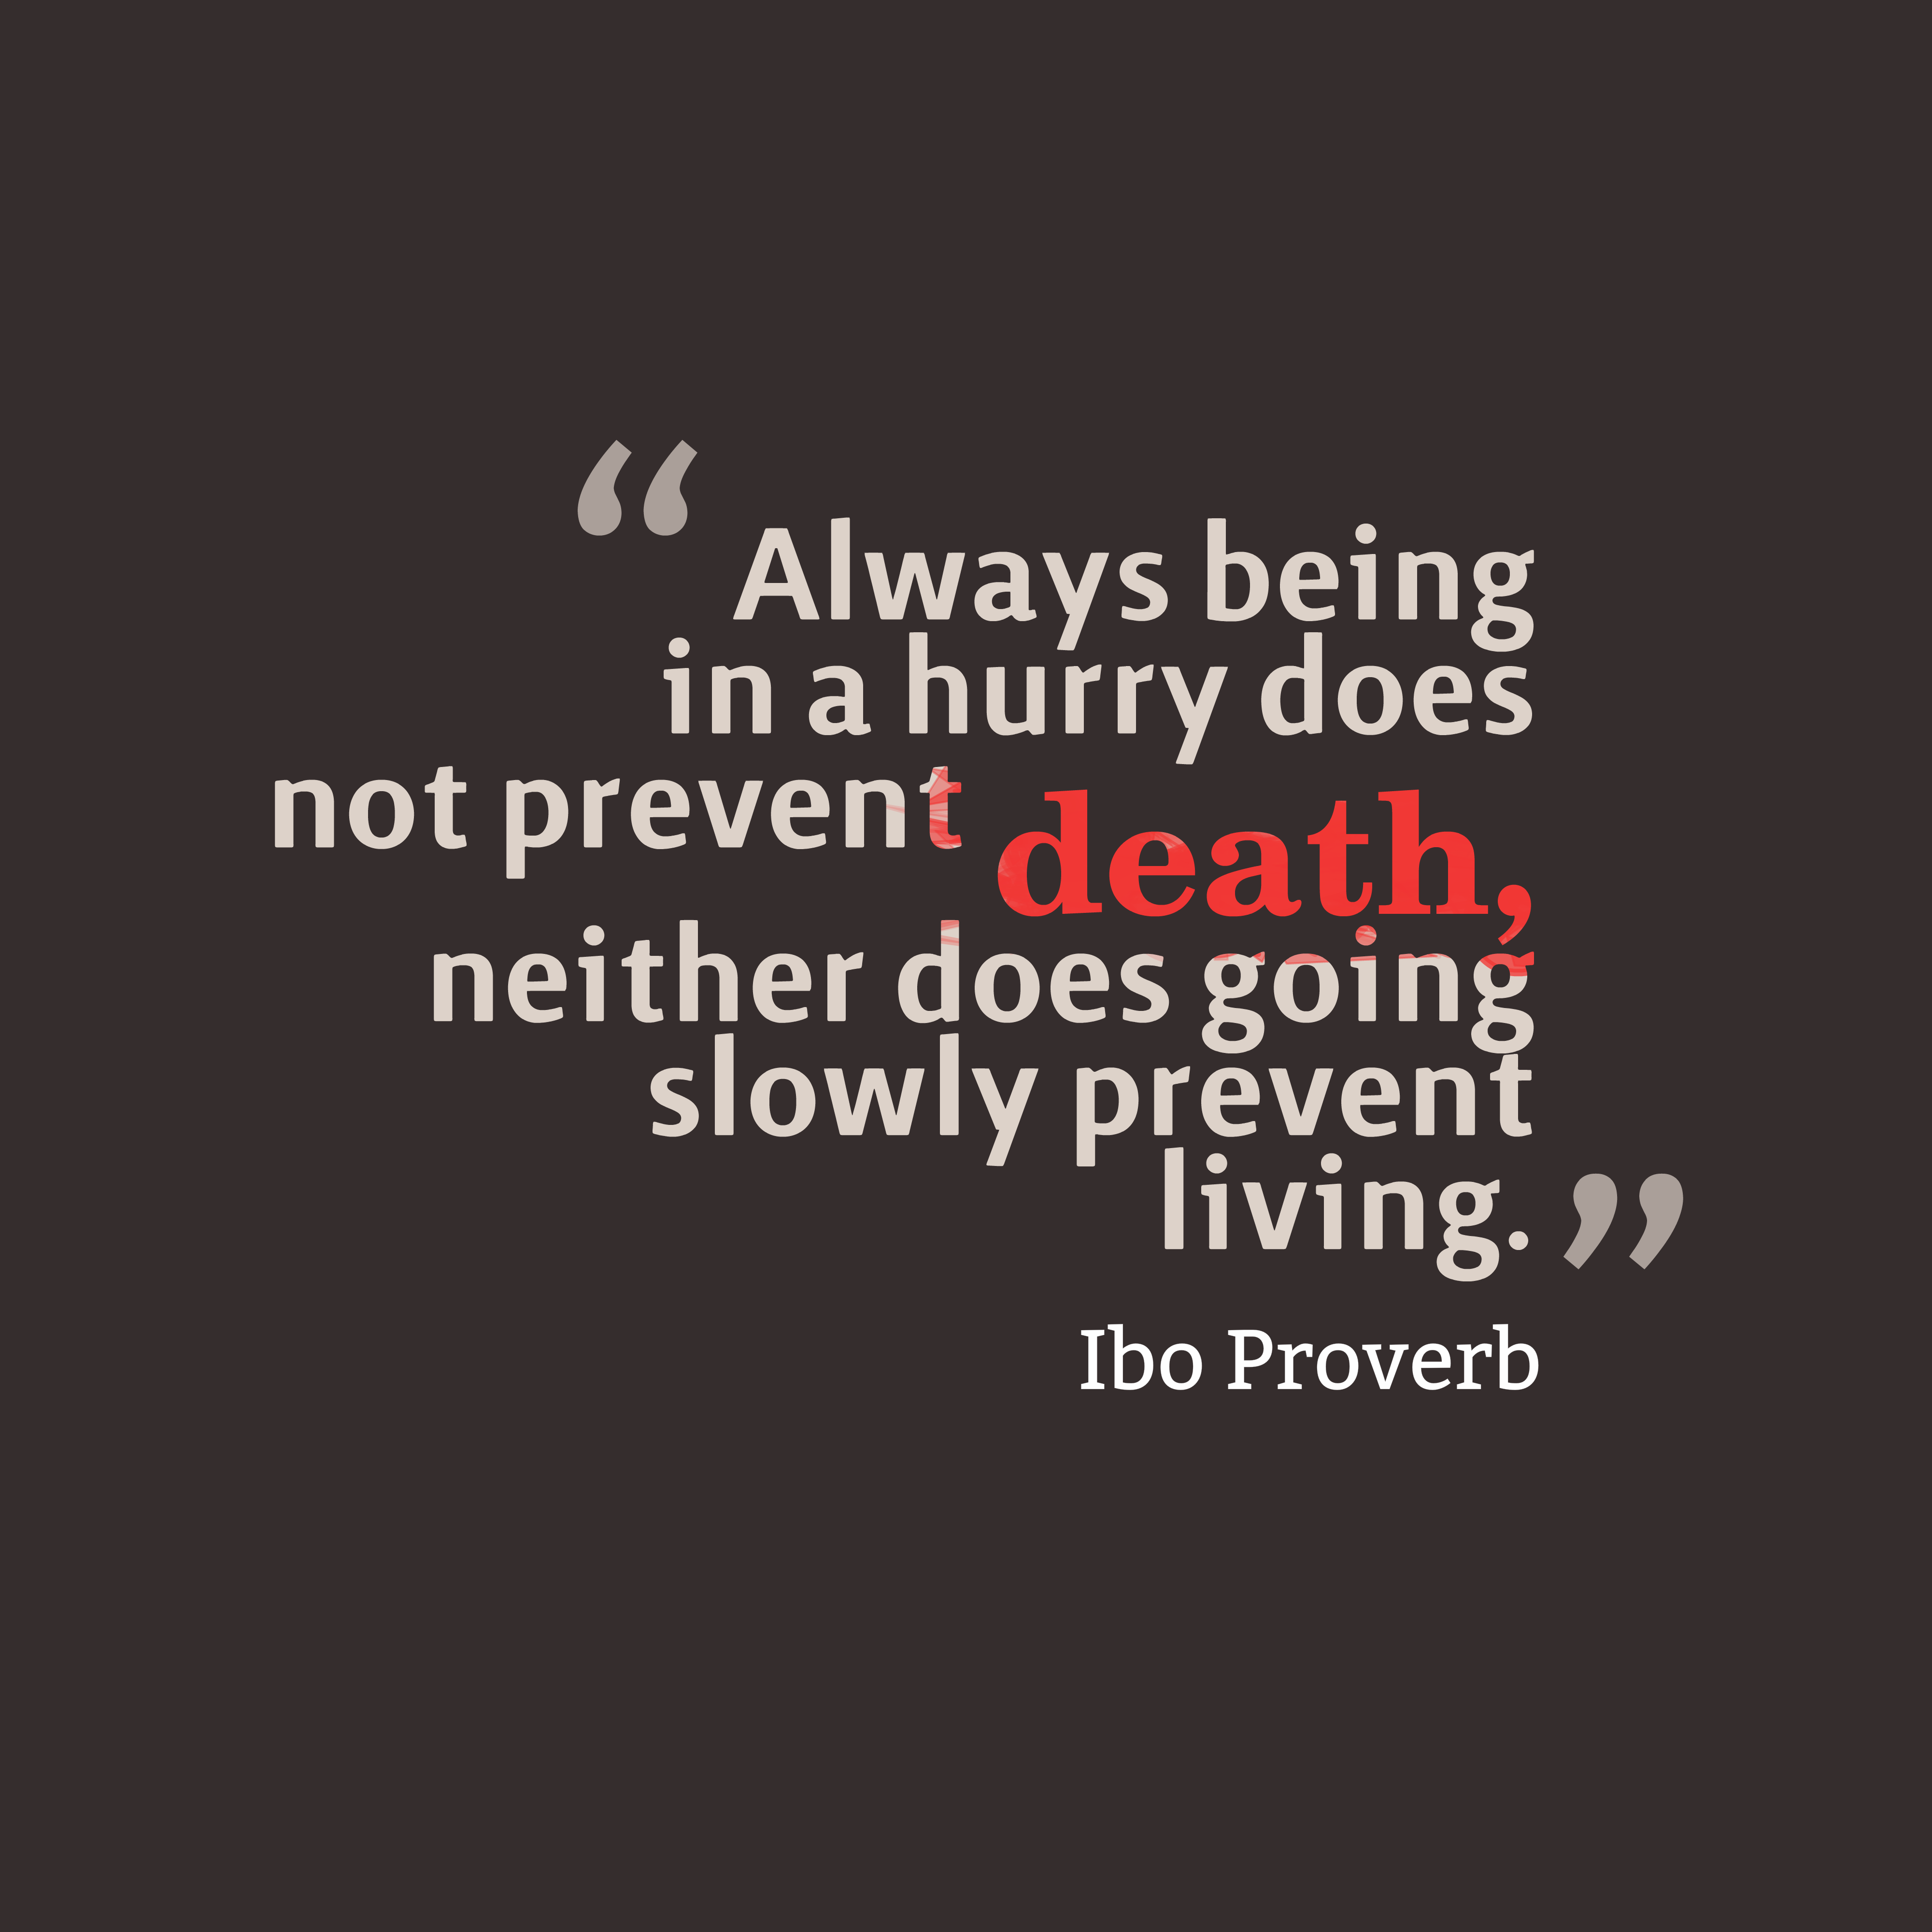 Quotes image of Always being in a hurry does not prevent death, neither does going slowly prevent living.